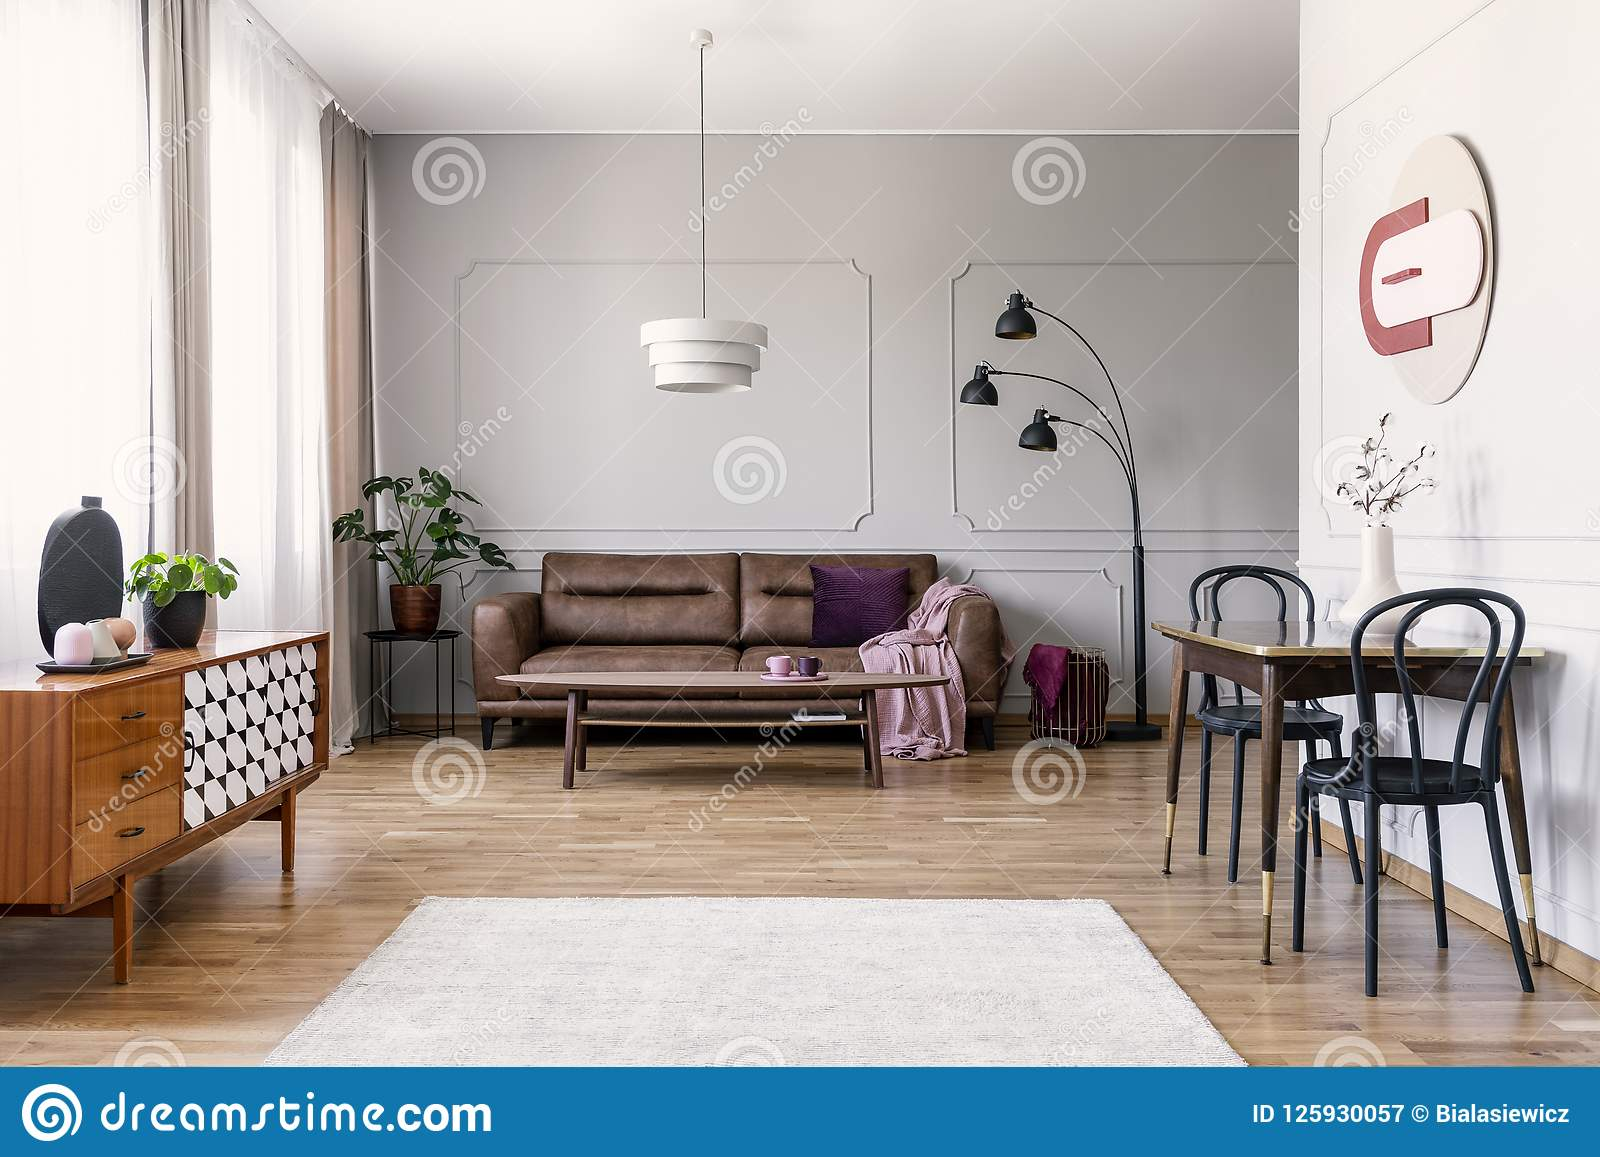 Real Photo Of Light Grey Living Room Interior With Window With